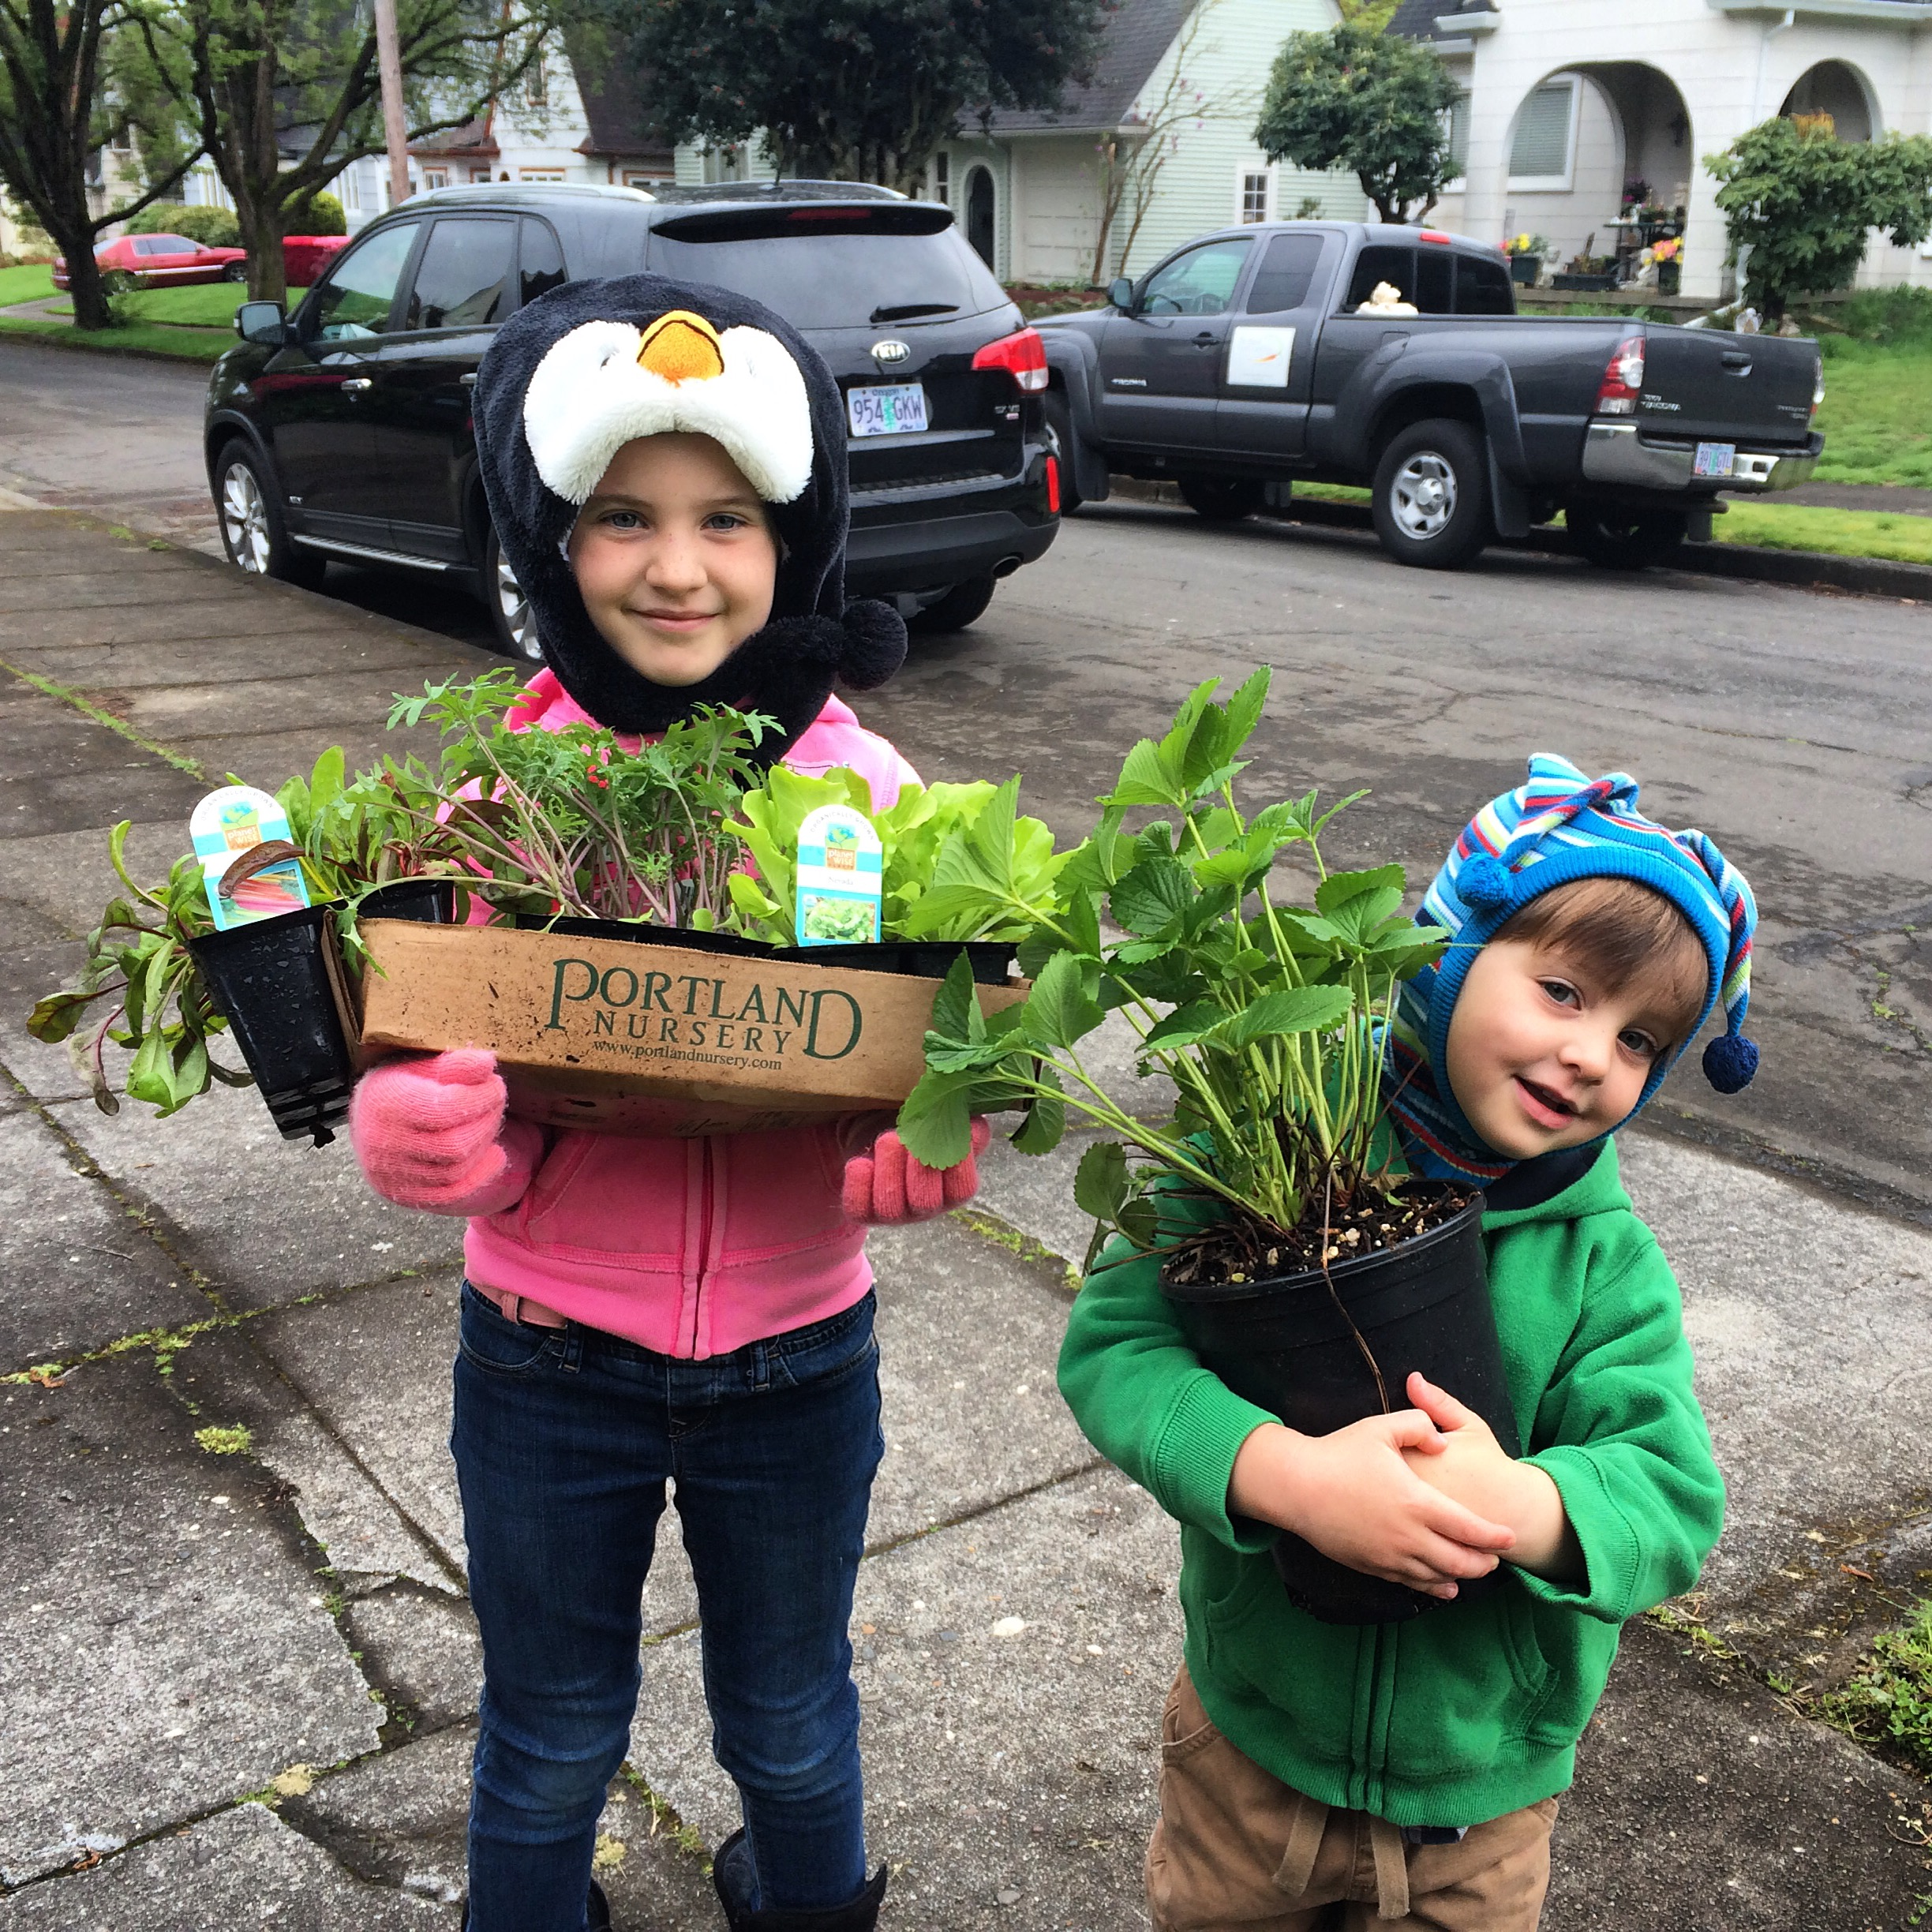 These two cuties are very enthusiastic about their Spring garden